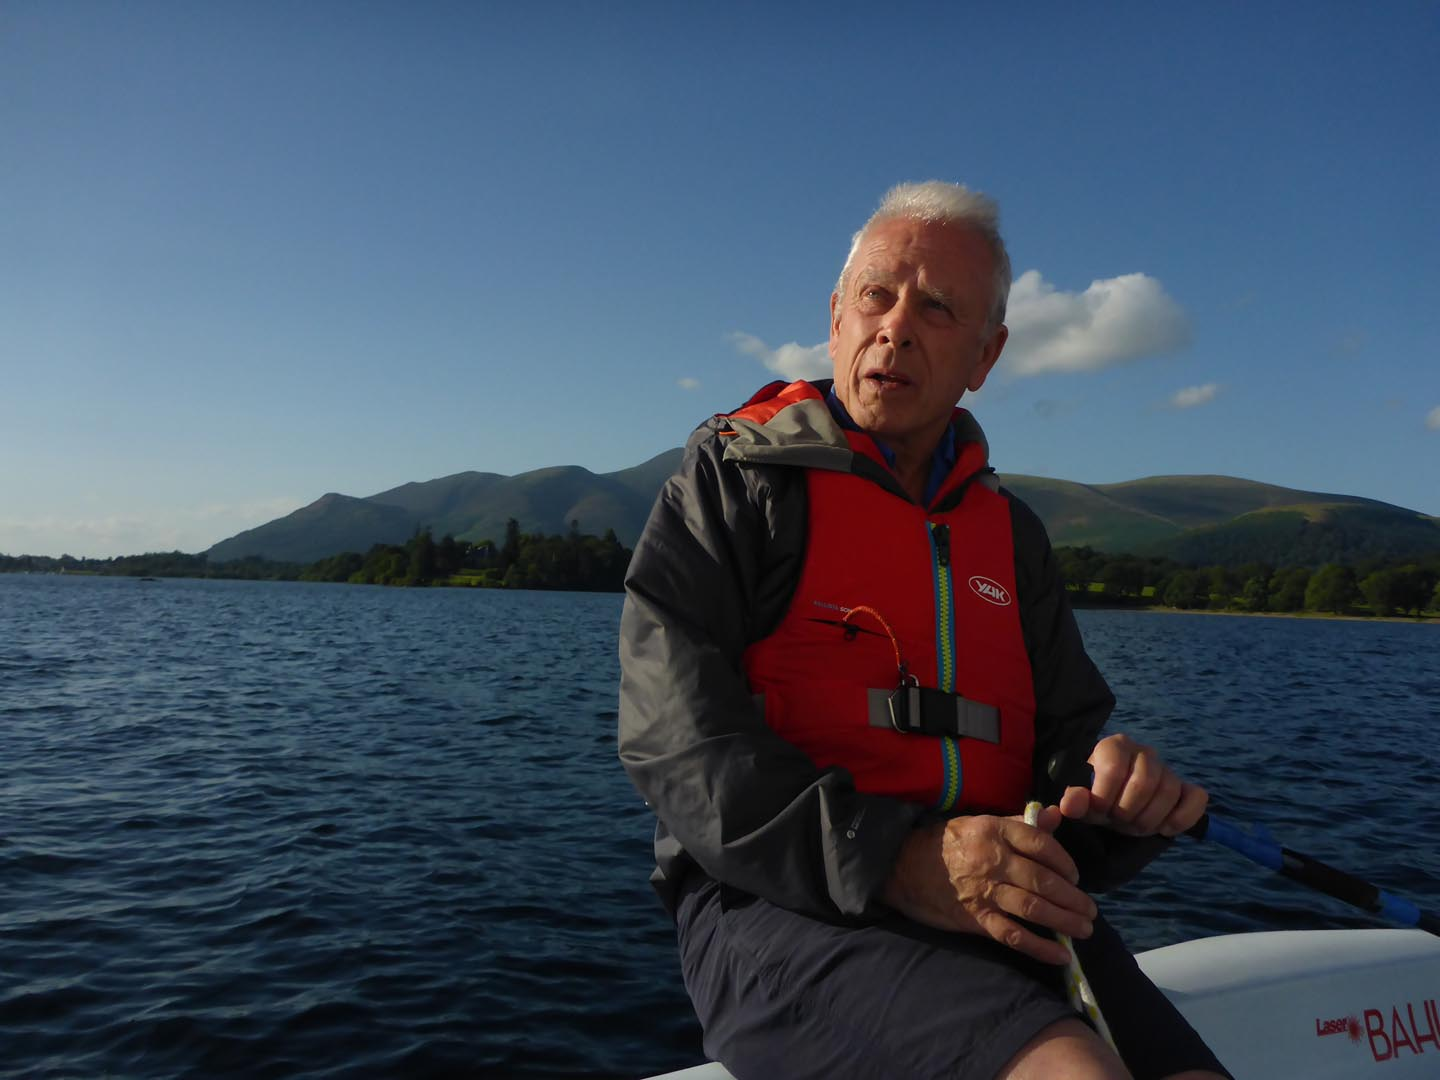 On the lake at Derwent Water